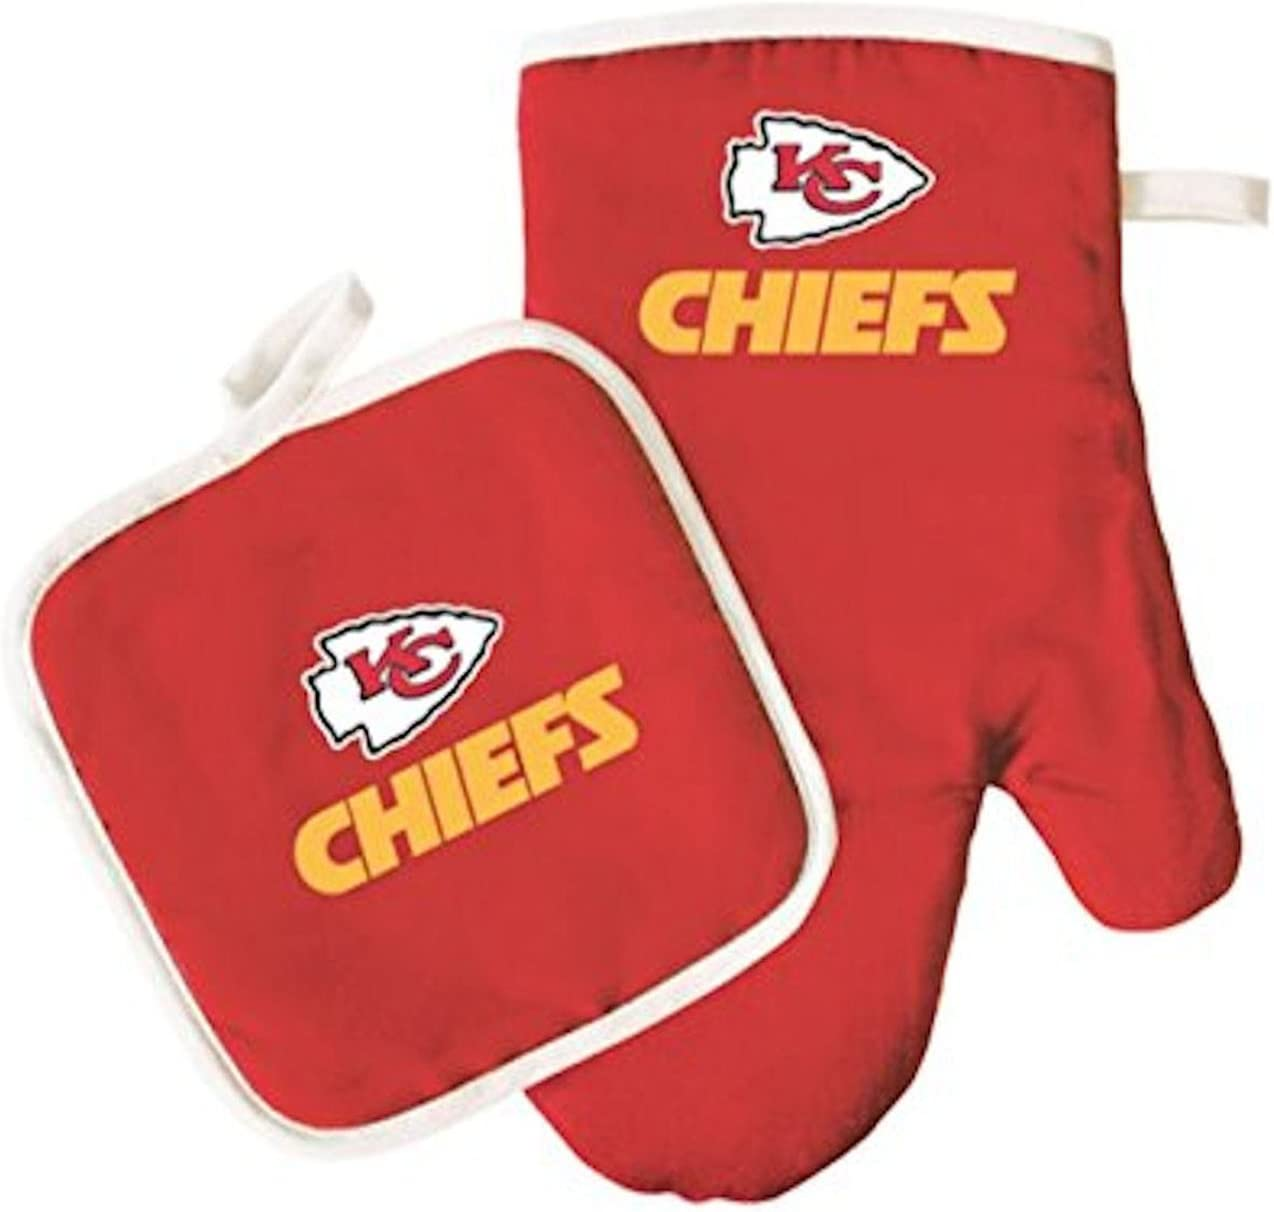 Kansas City Chiefs Oven Mitt & Pot Holder Set Cooking Grilling Barbecue Football